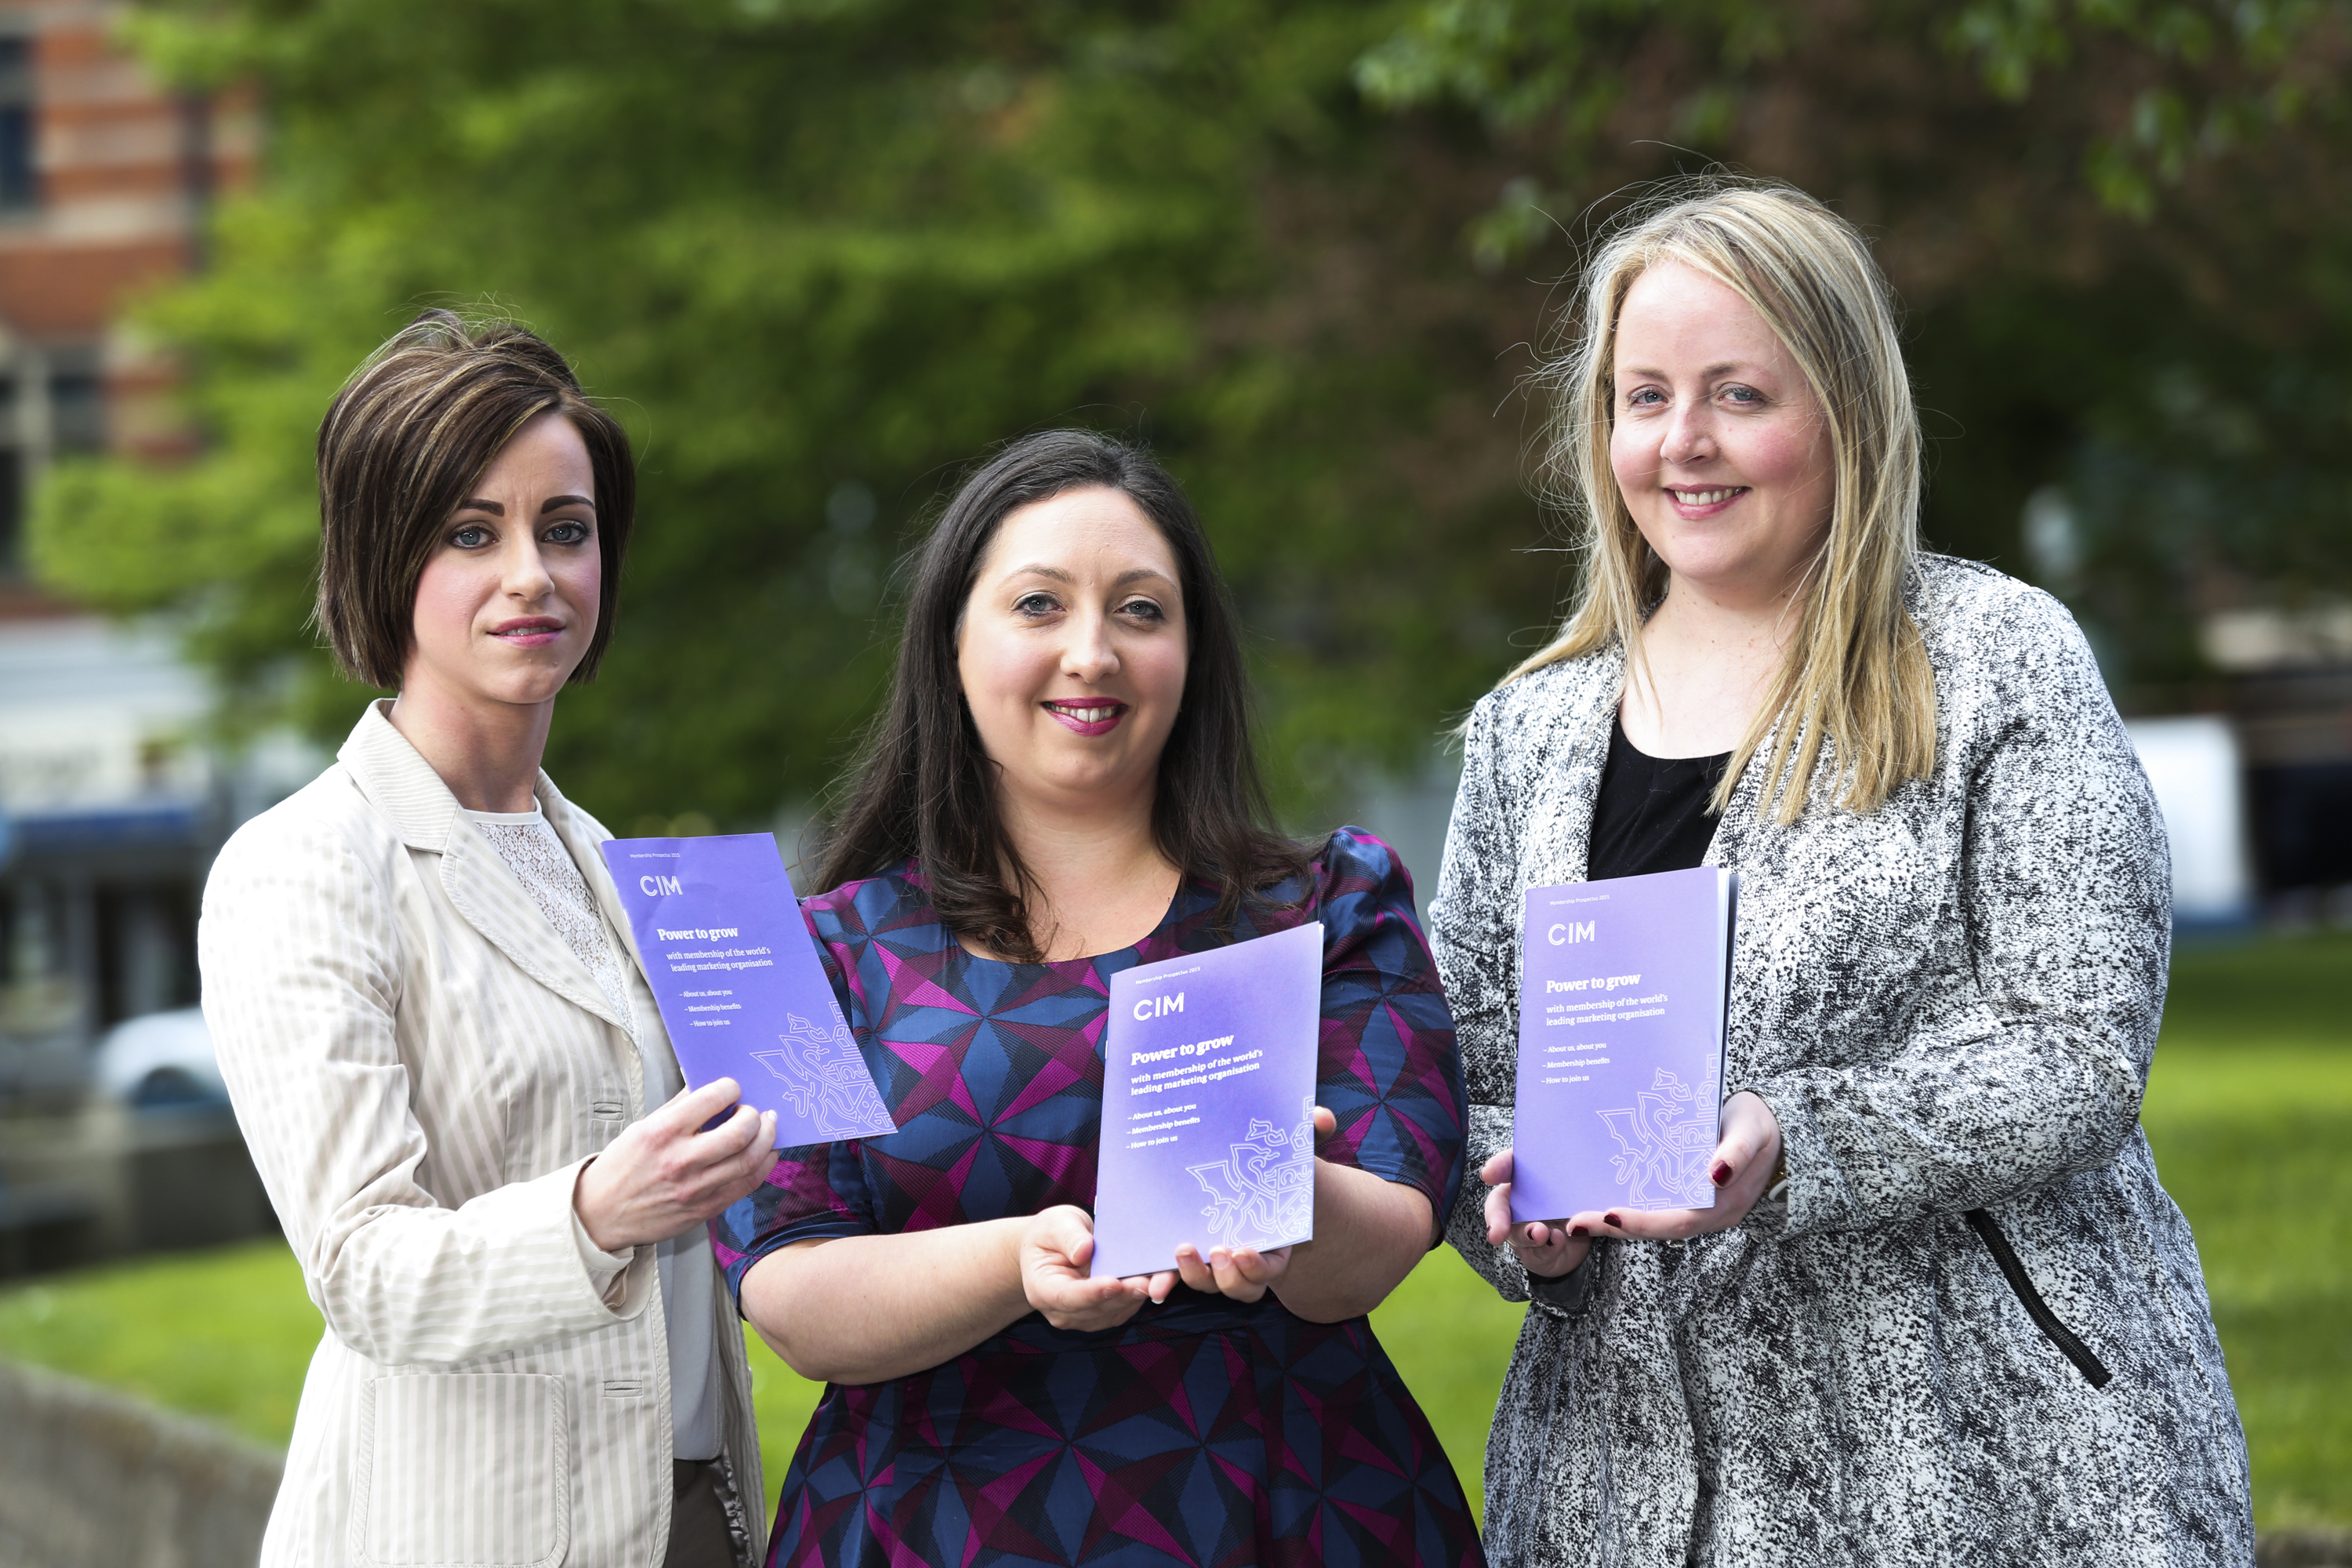 Northern Ireland small businesses must embrace new technology to grow